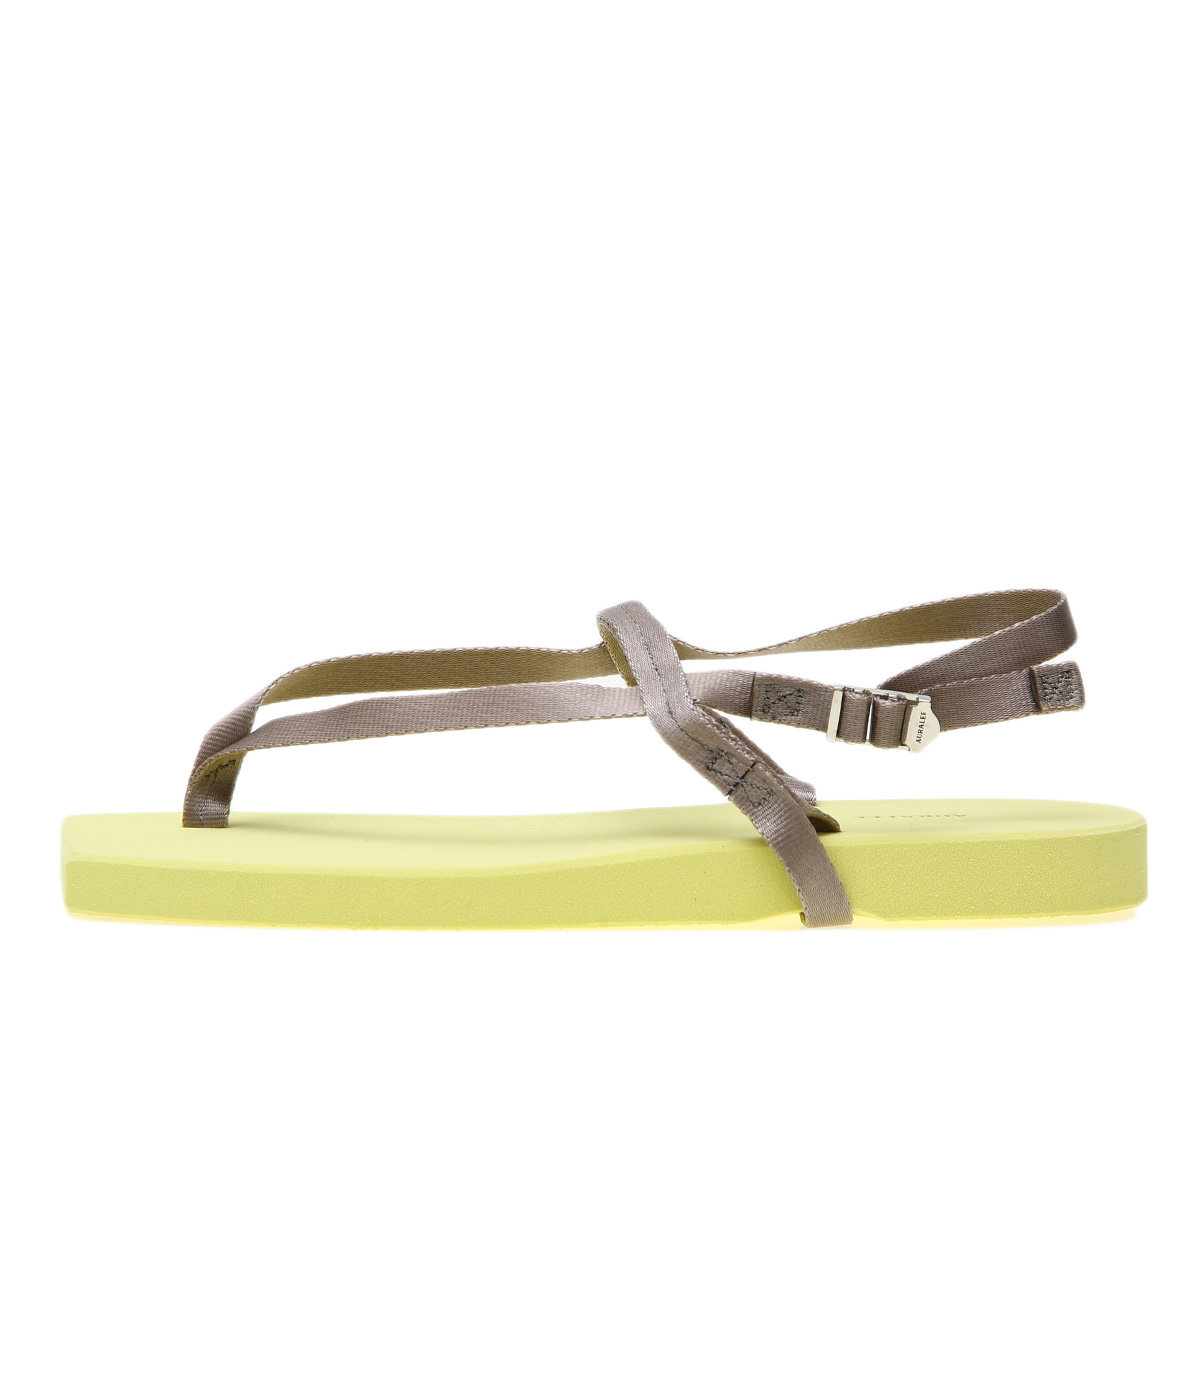 【レディース】BELTED BEACH SANDALS MADE BY FOOT THE COACHER